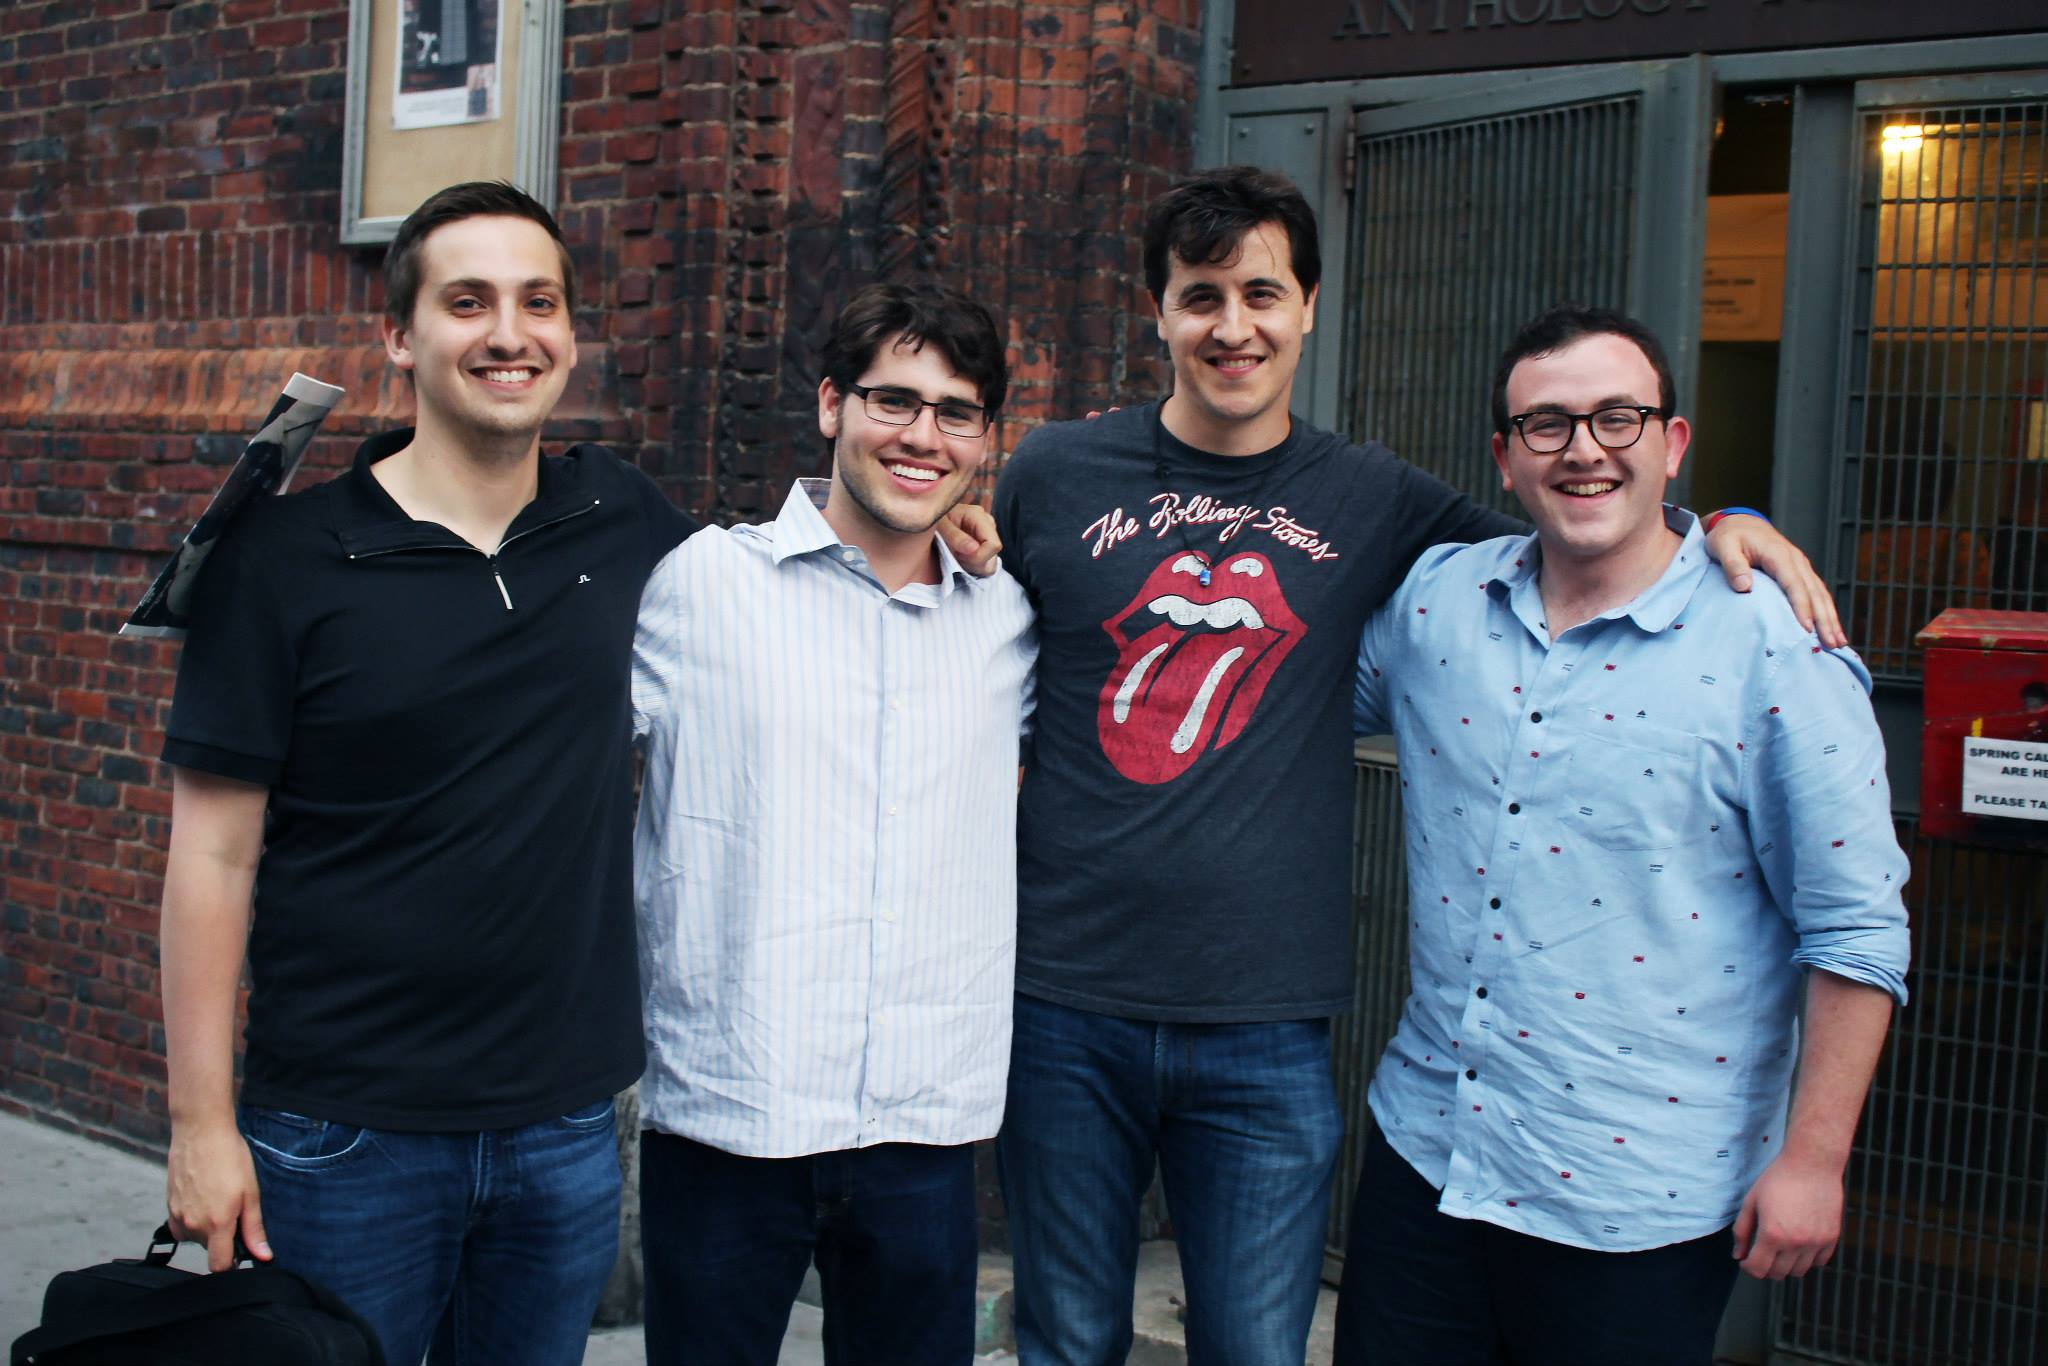 From left to right: Tom Selenow (Writer/Star/Producer), Ryan Reeson (Score), Scott Rocco (Star), Ben Fraternale (Director, Writer, Producer, Editor)